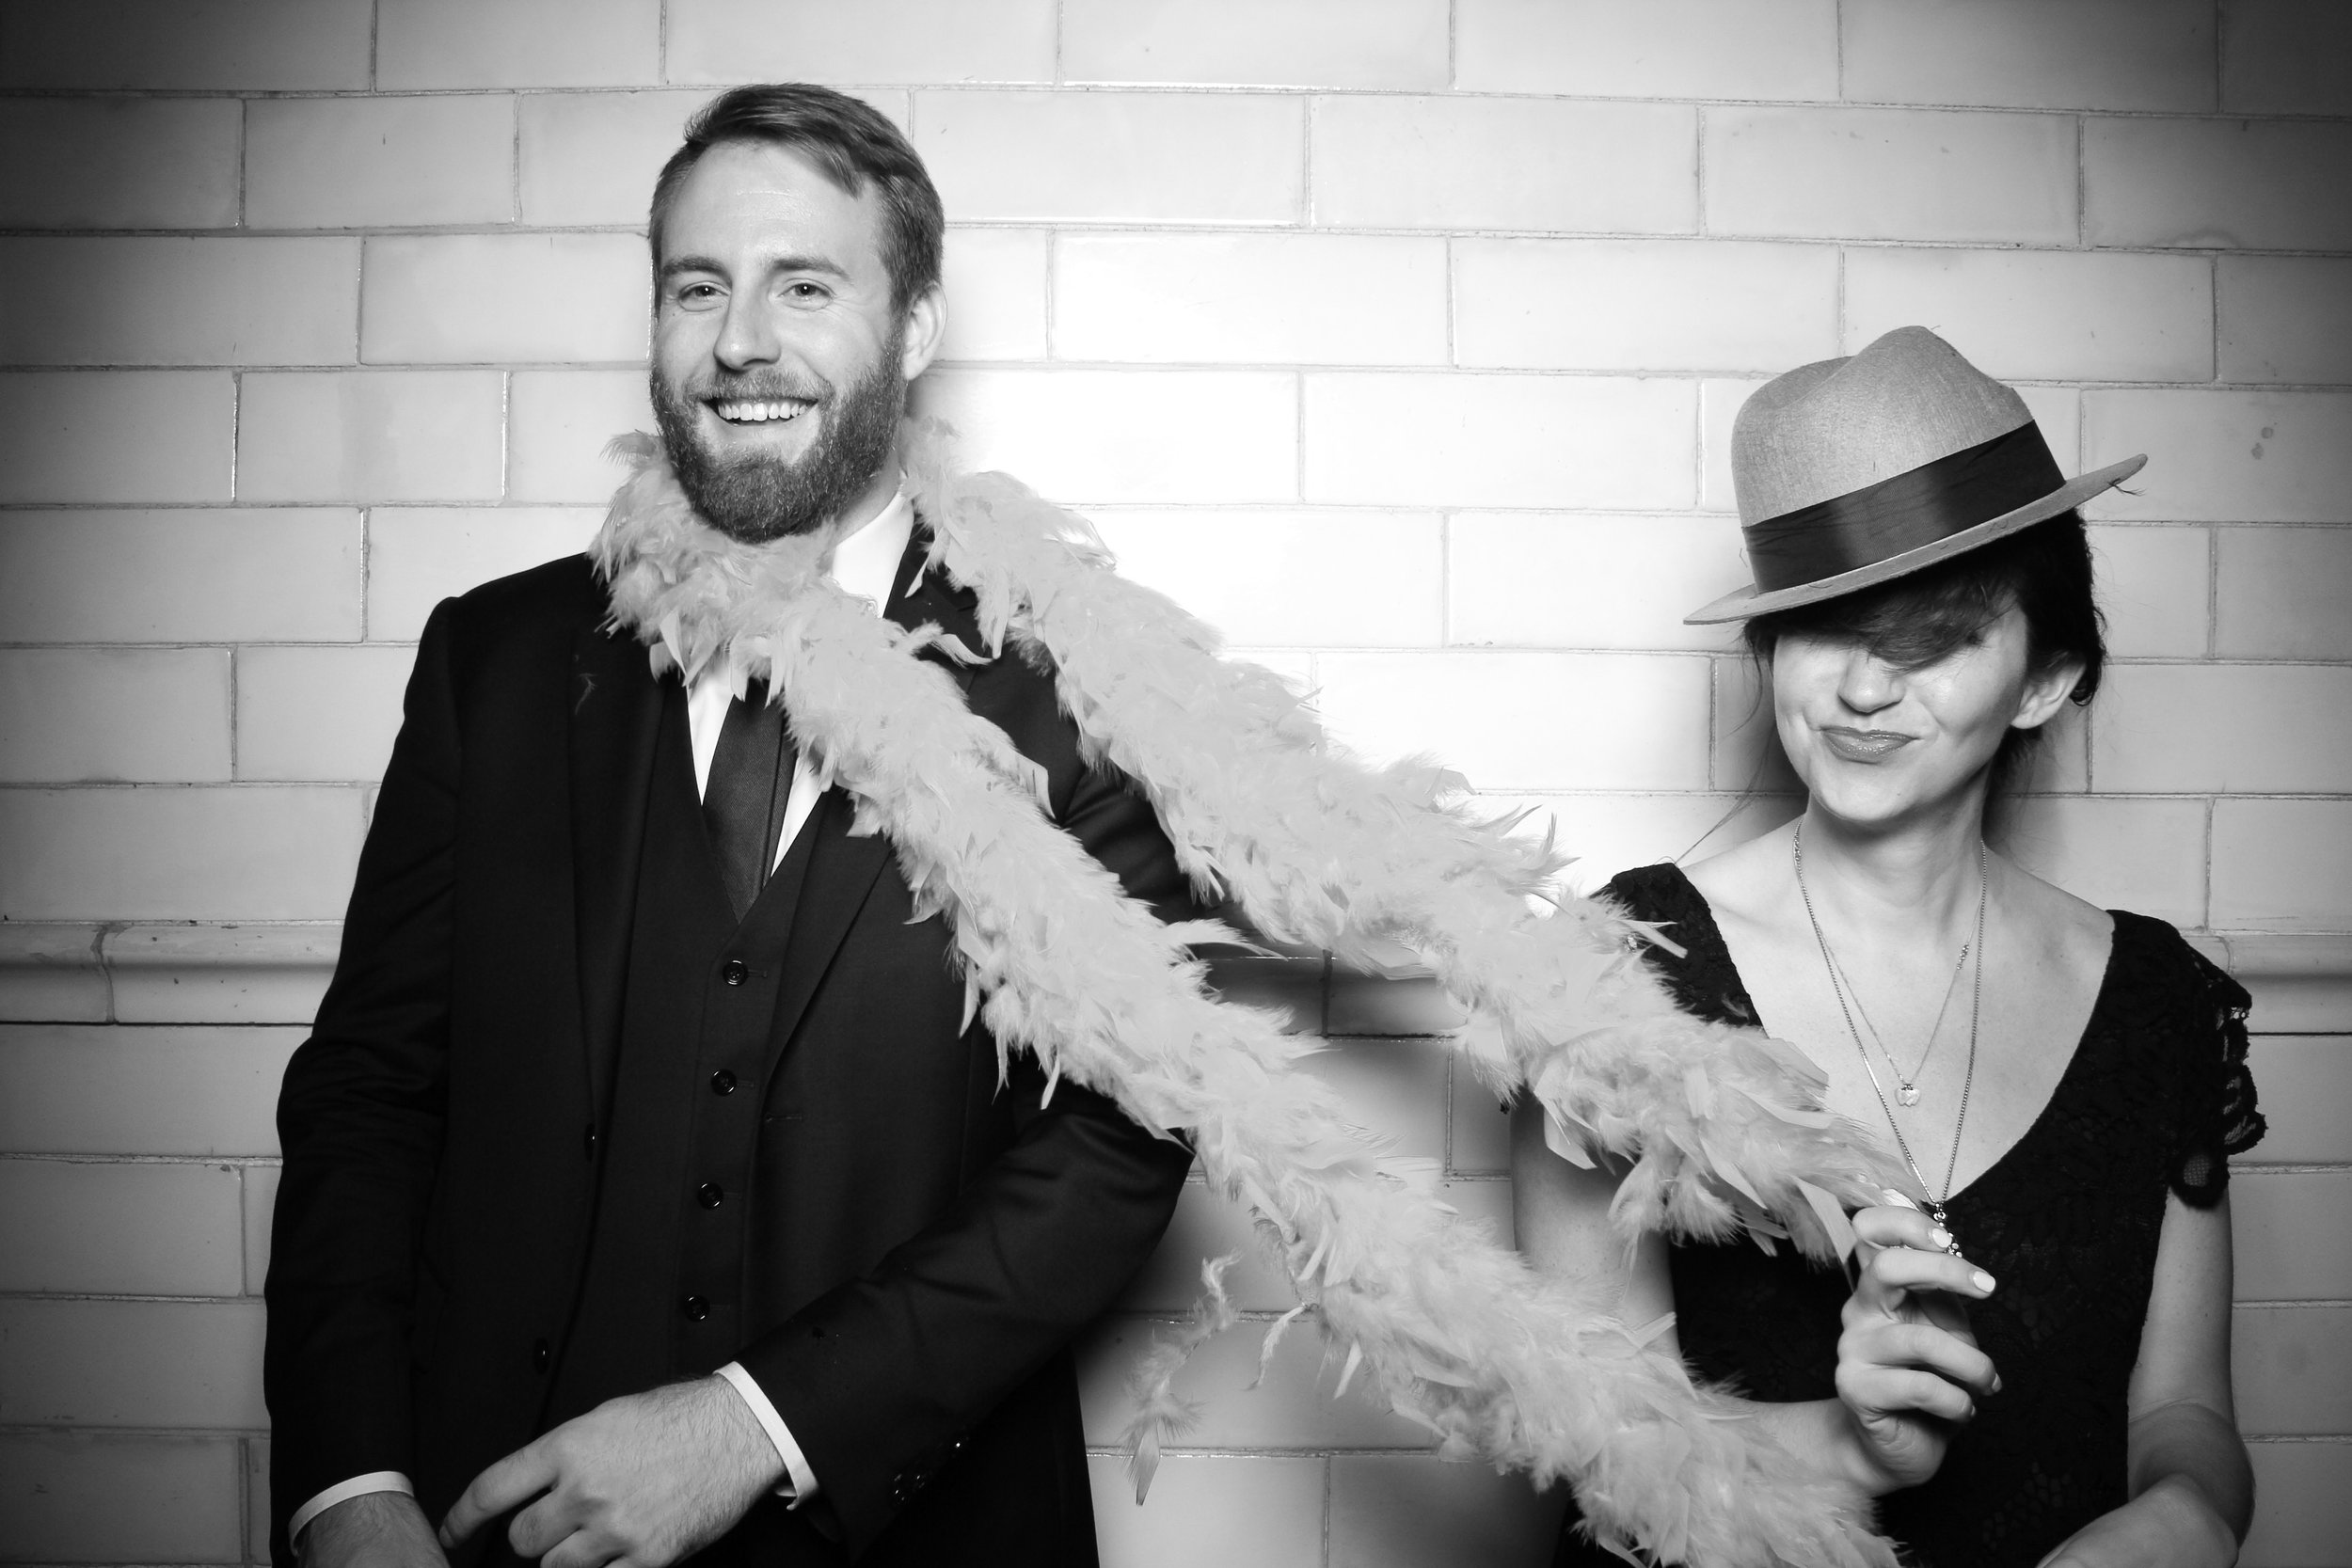 Firehouse_Chicago_Edgewater_Wedding_Reception_Photo_Booth_06.jpg